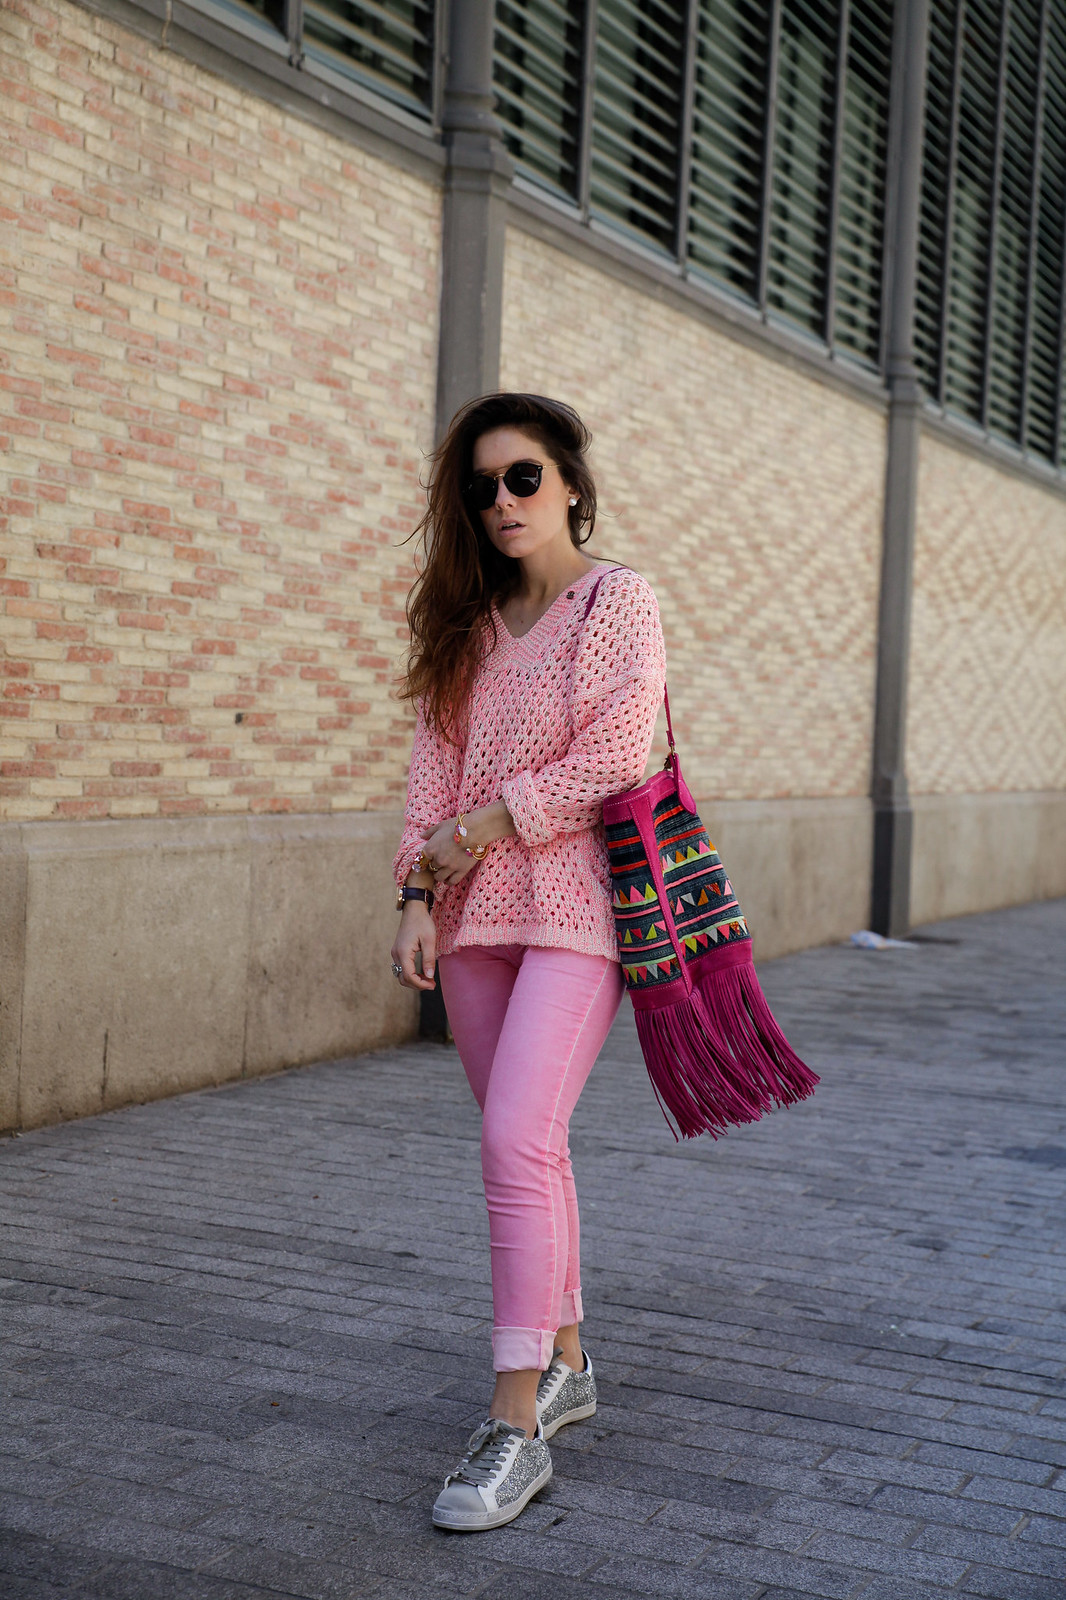 014_pink_look_with_rüga_streetsyle_barcelona_influencer_theguestgirl_spain